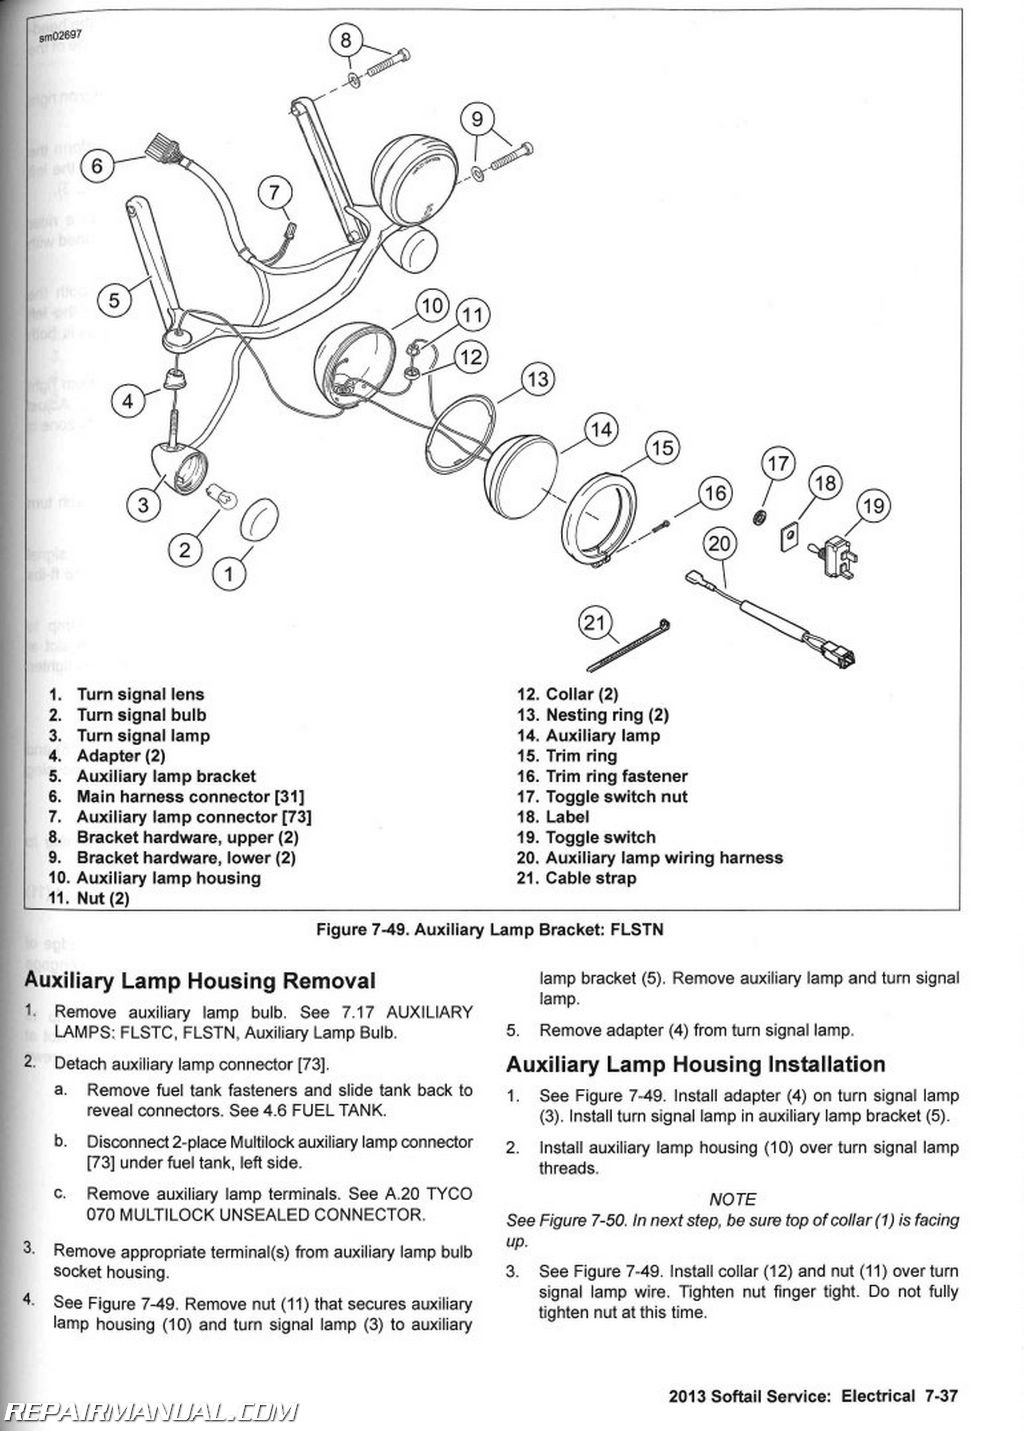 2013 Harley Davidson Softail Motorcycle Service Manual Wiring Guide